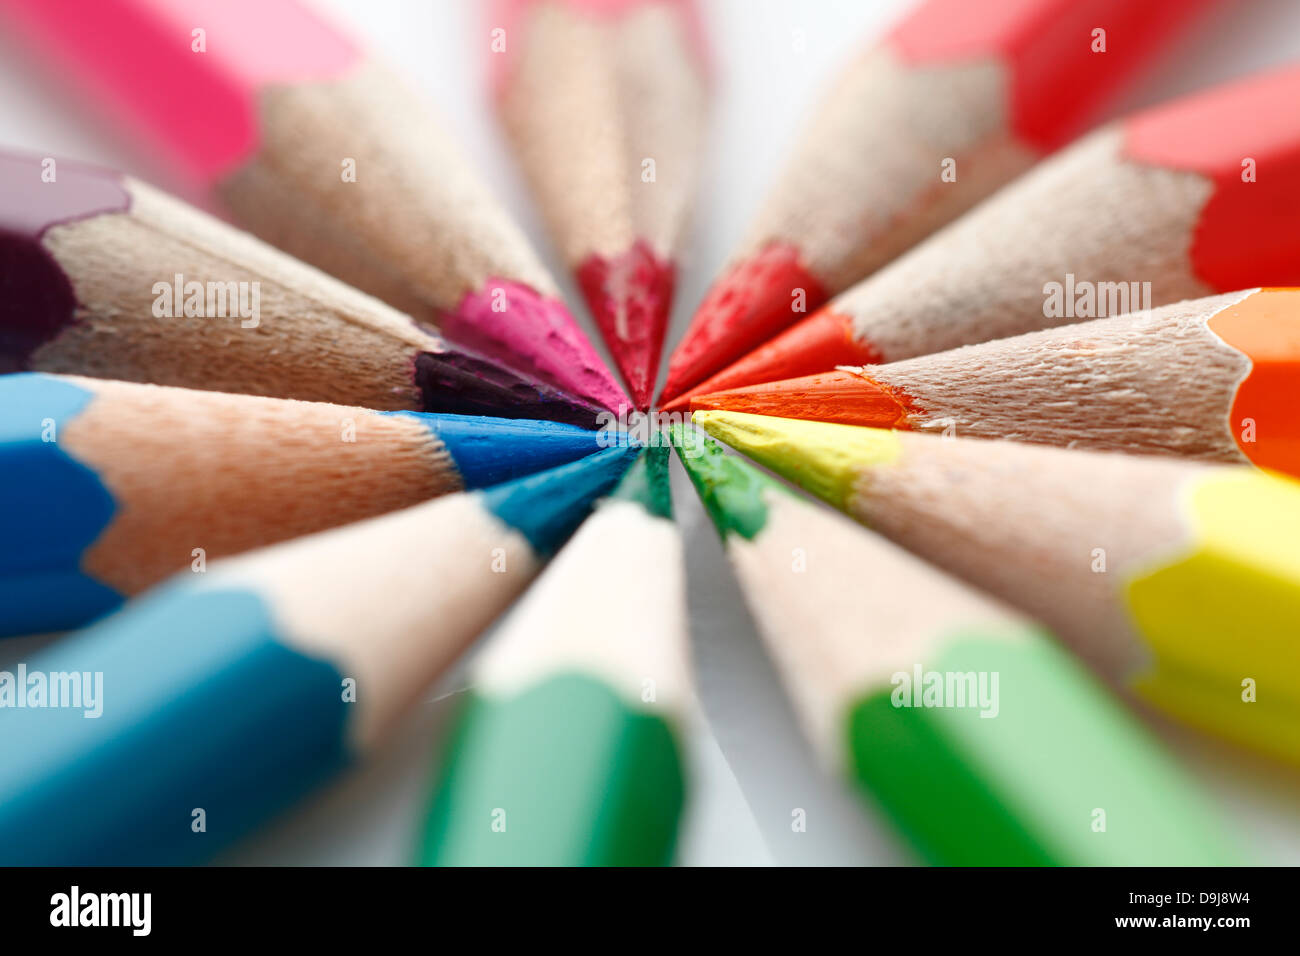 Coloured pencils arranged to form a circle, meeting at the tips - Stock Image